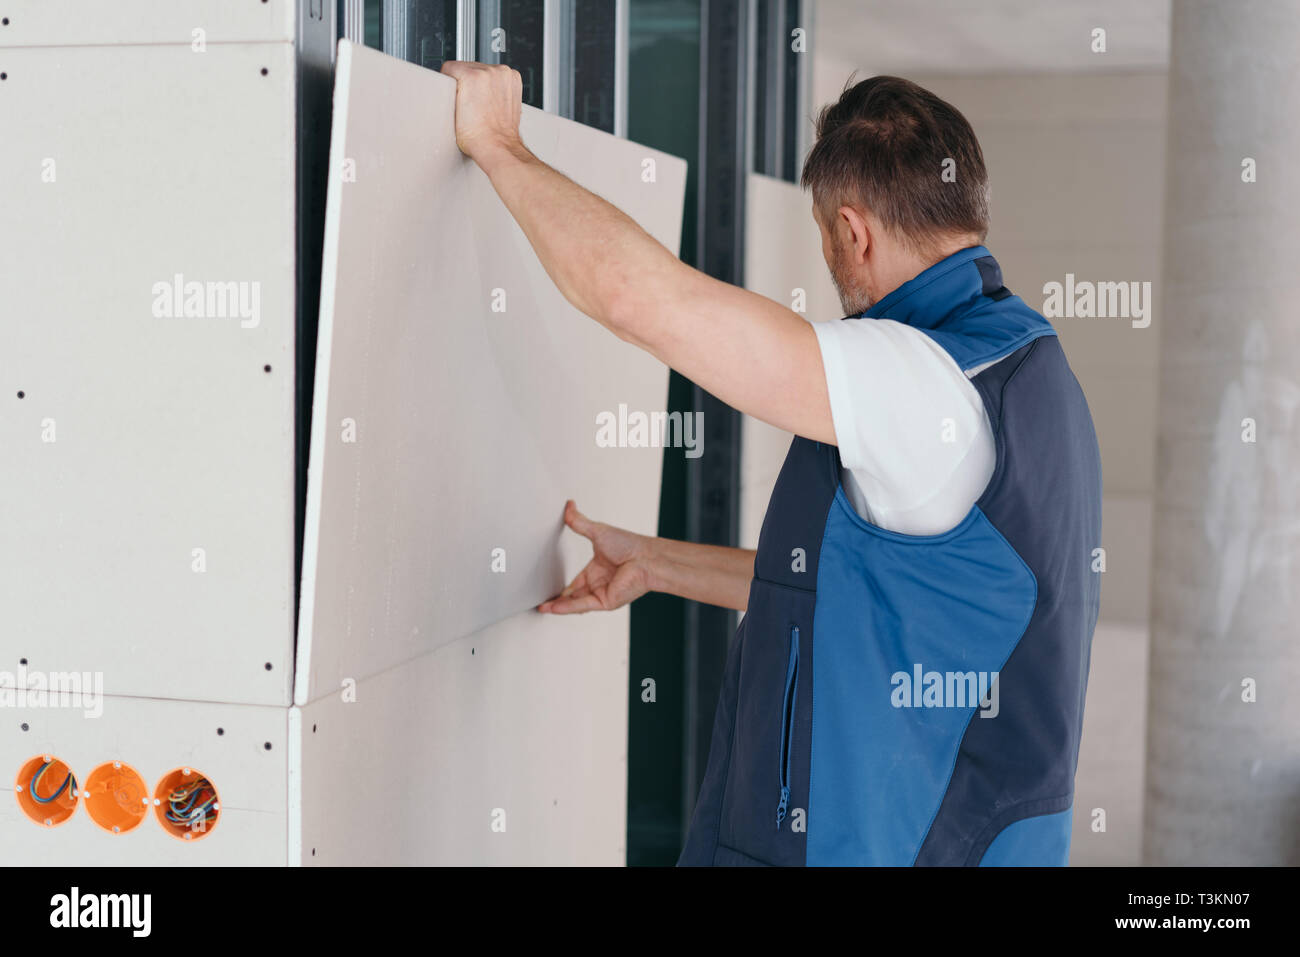 Builder fitting white wood cladding in a new build house with open electrical sockets visible below Stock Photo